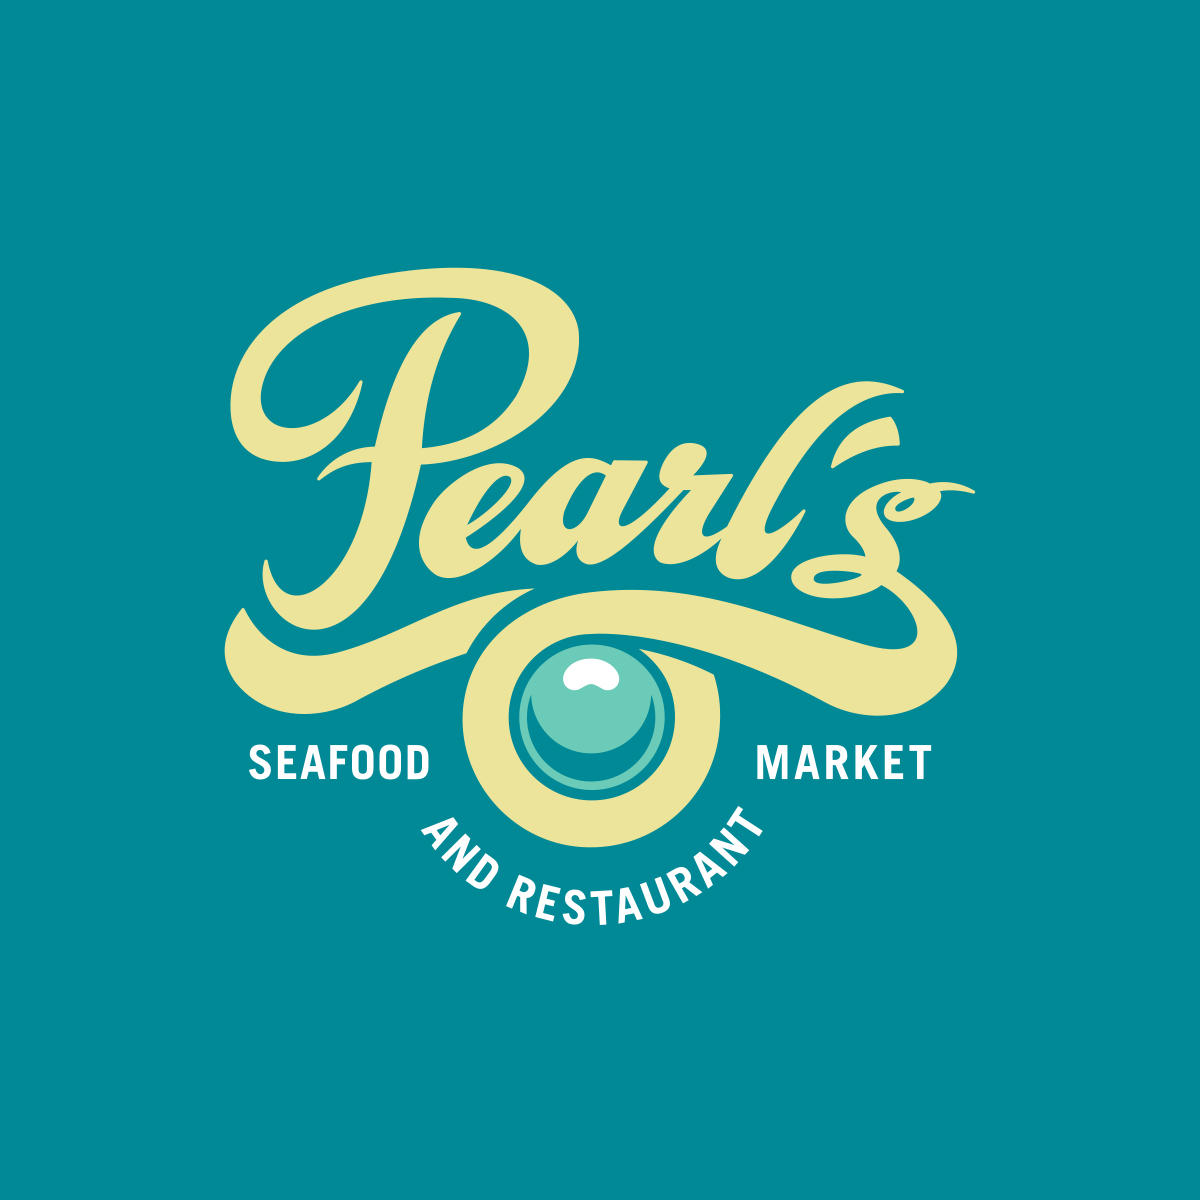 Pearl's Seafood Market and Restaurant